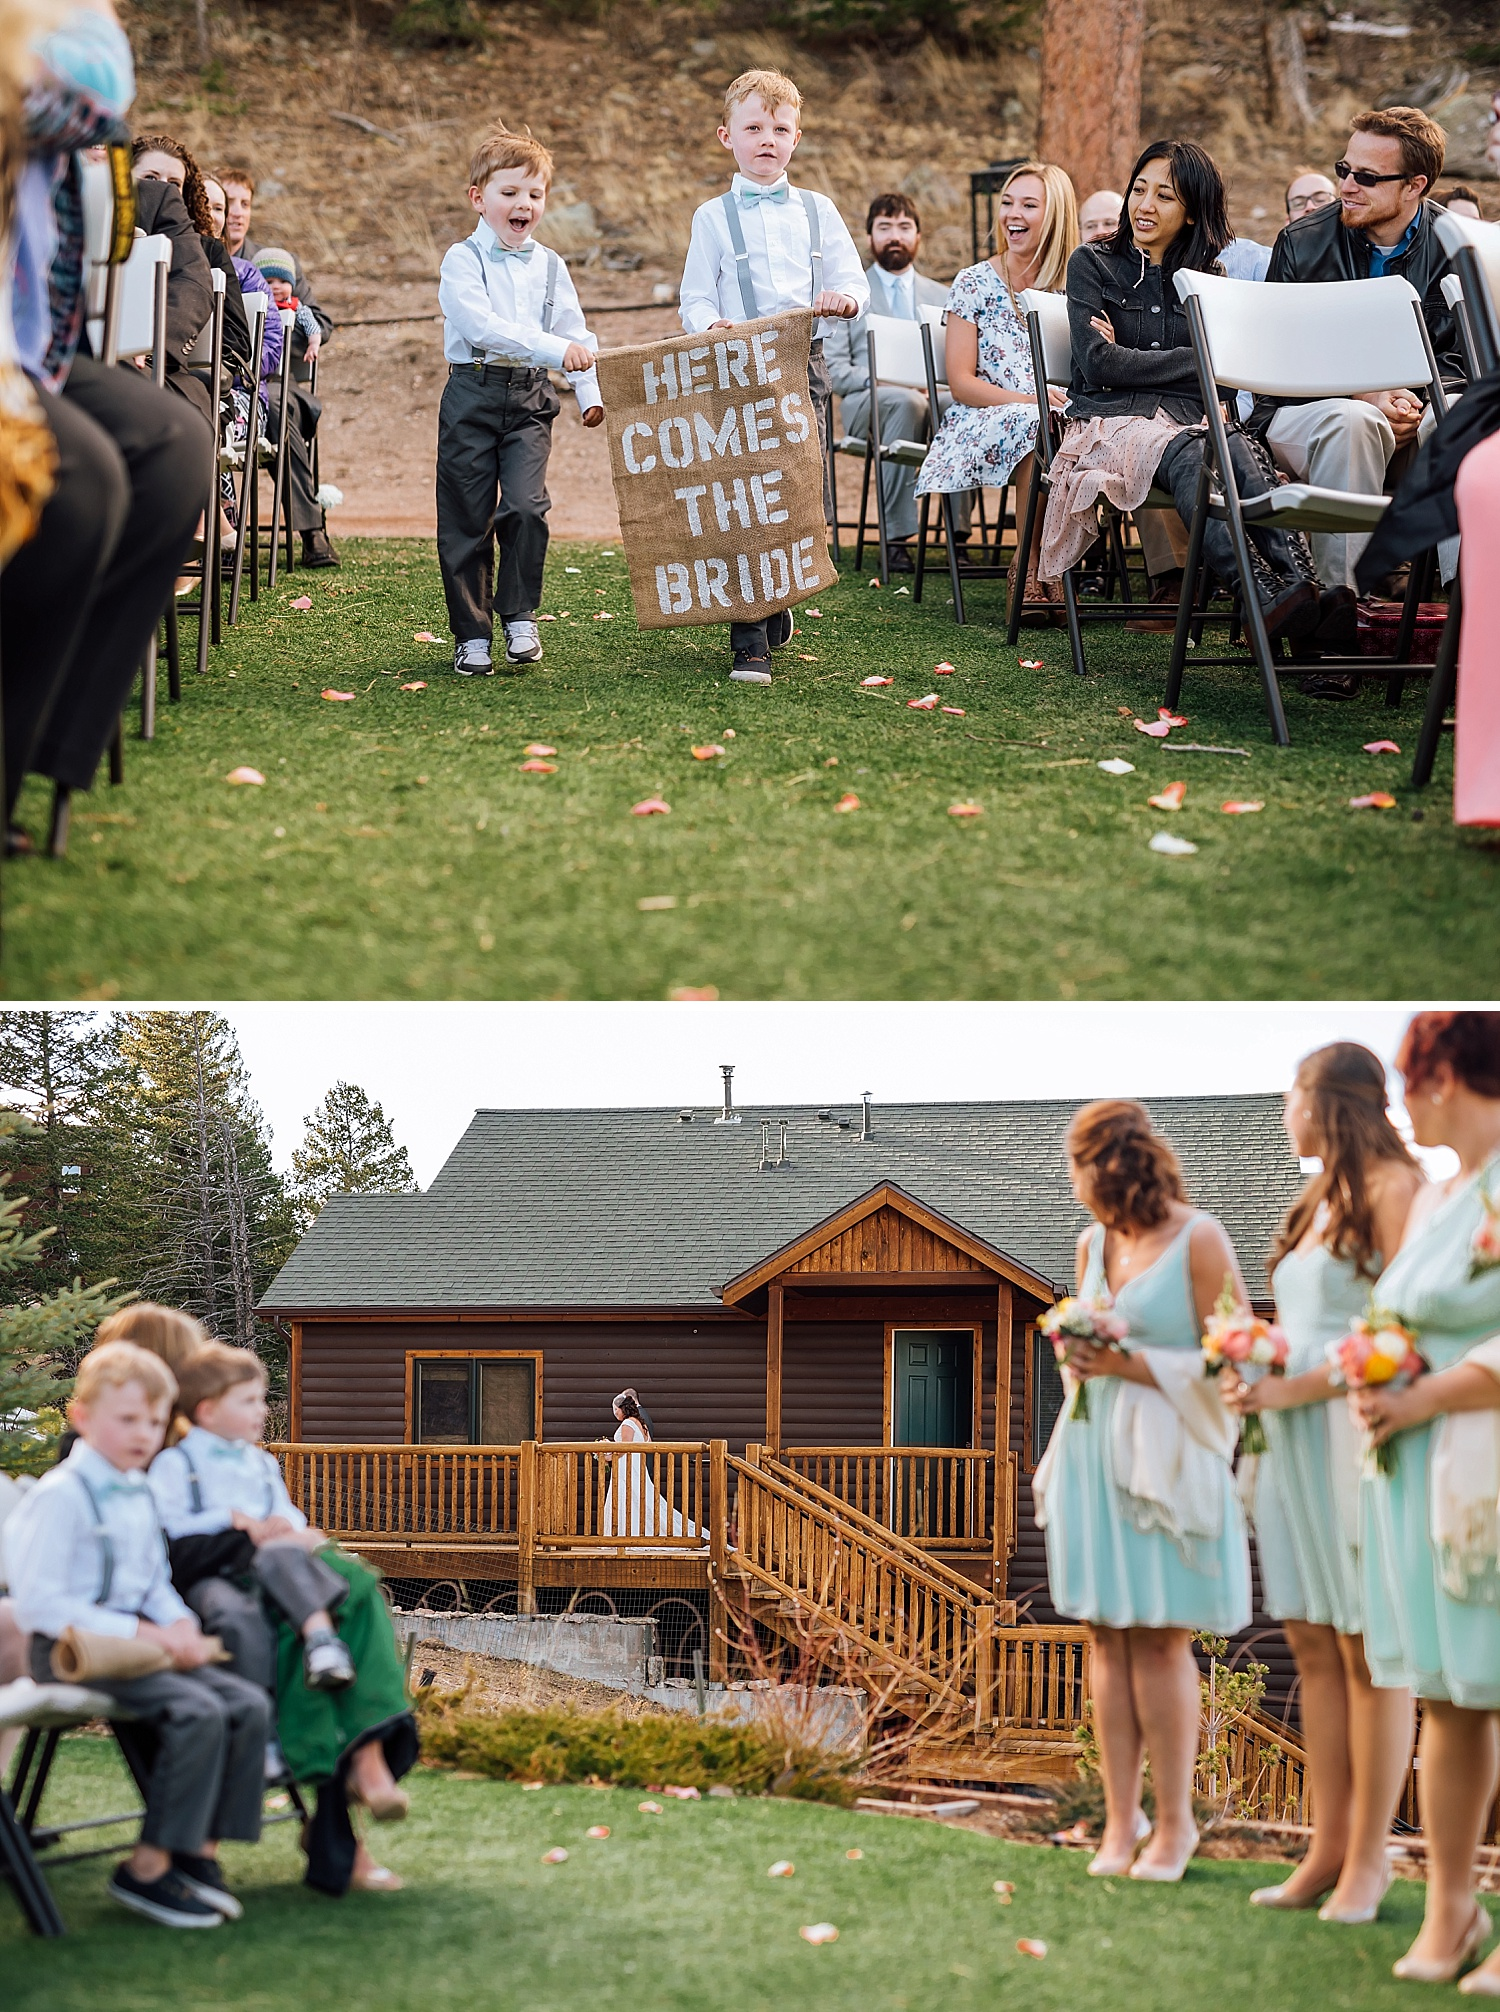 """What a cute idea! Having younger relatives walk down the aisle with a """"here comes the bride"""" sign. Mary's Lake Lodge in Estes Park, Colorado would be the perfect place for such a fun mountain wedding!Photo by Maddie Mae Photography"""